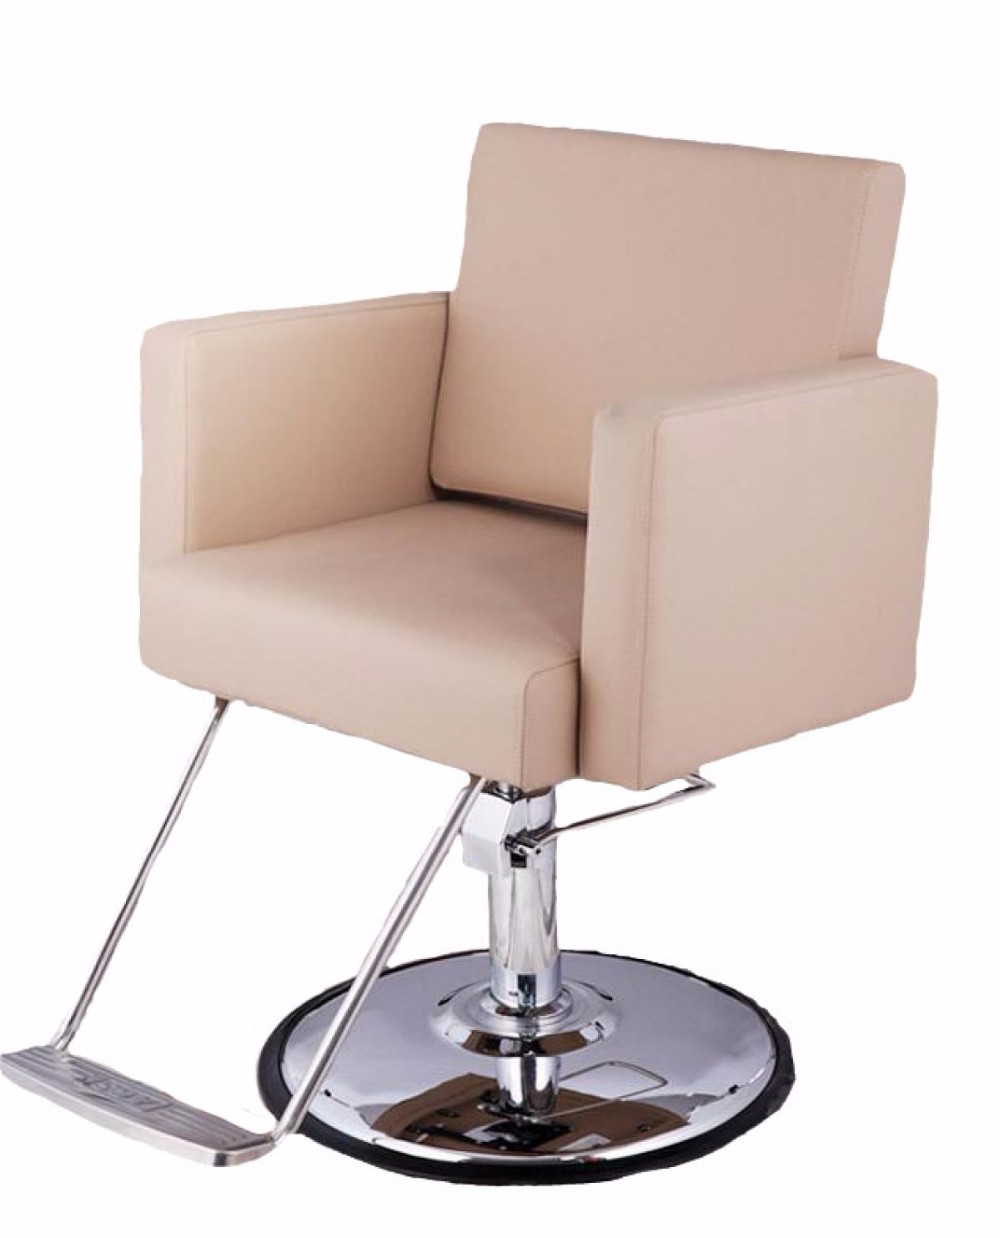 Professional quality beauty salon equipment Canon styling chair